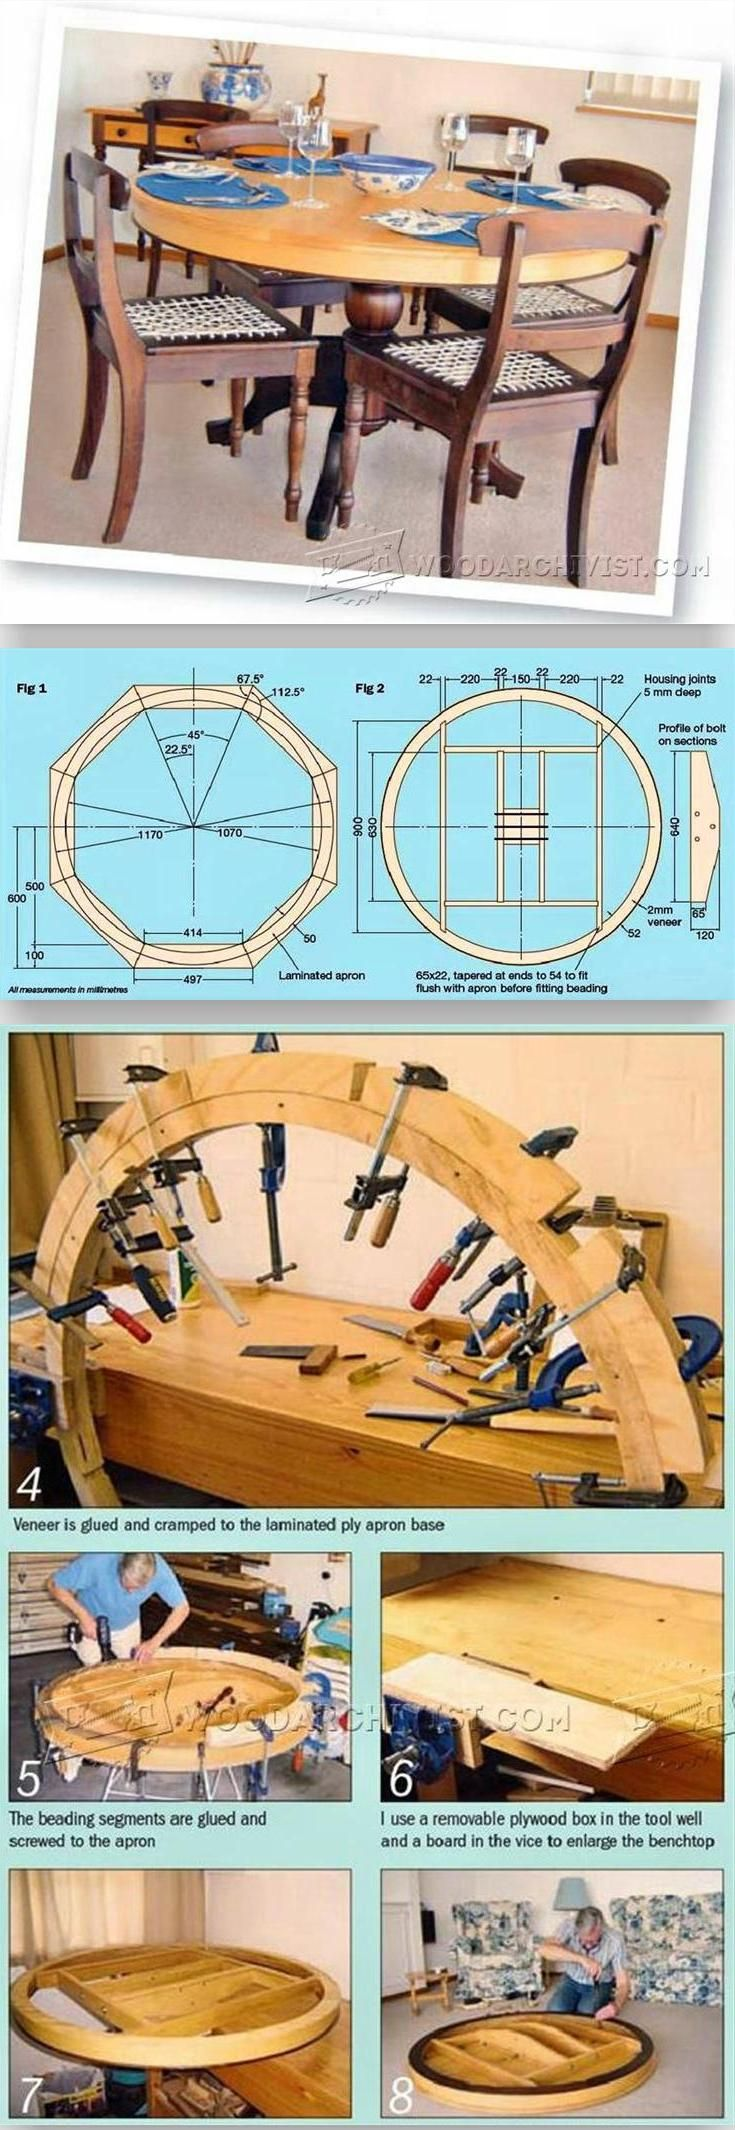 Round Dining Table Plans - Furniture Plans and Projects | WoodArchivist.com